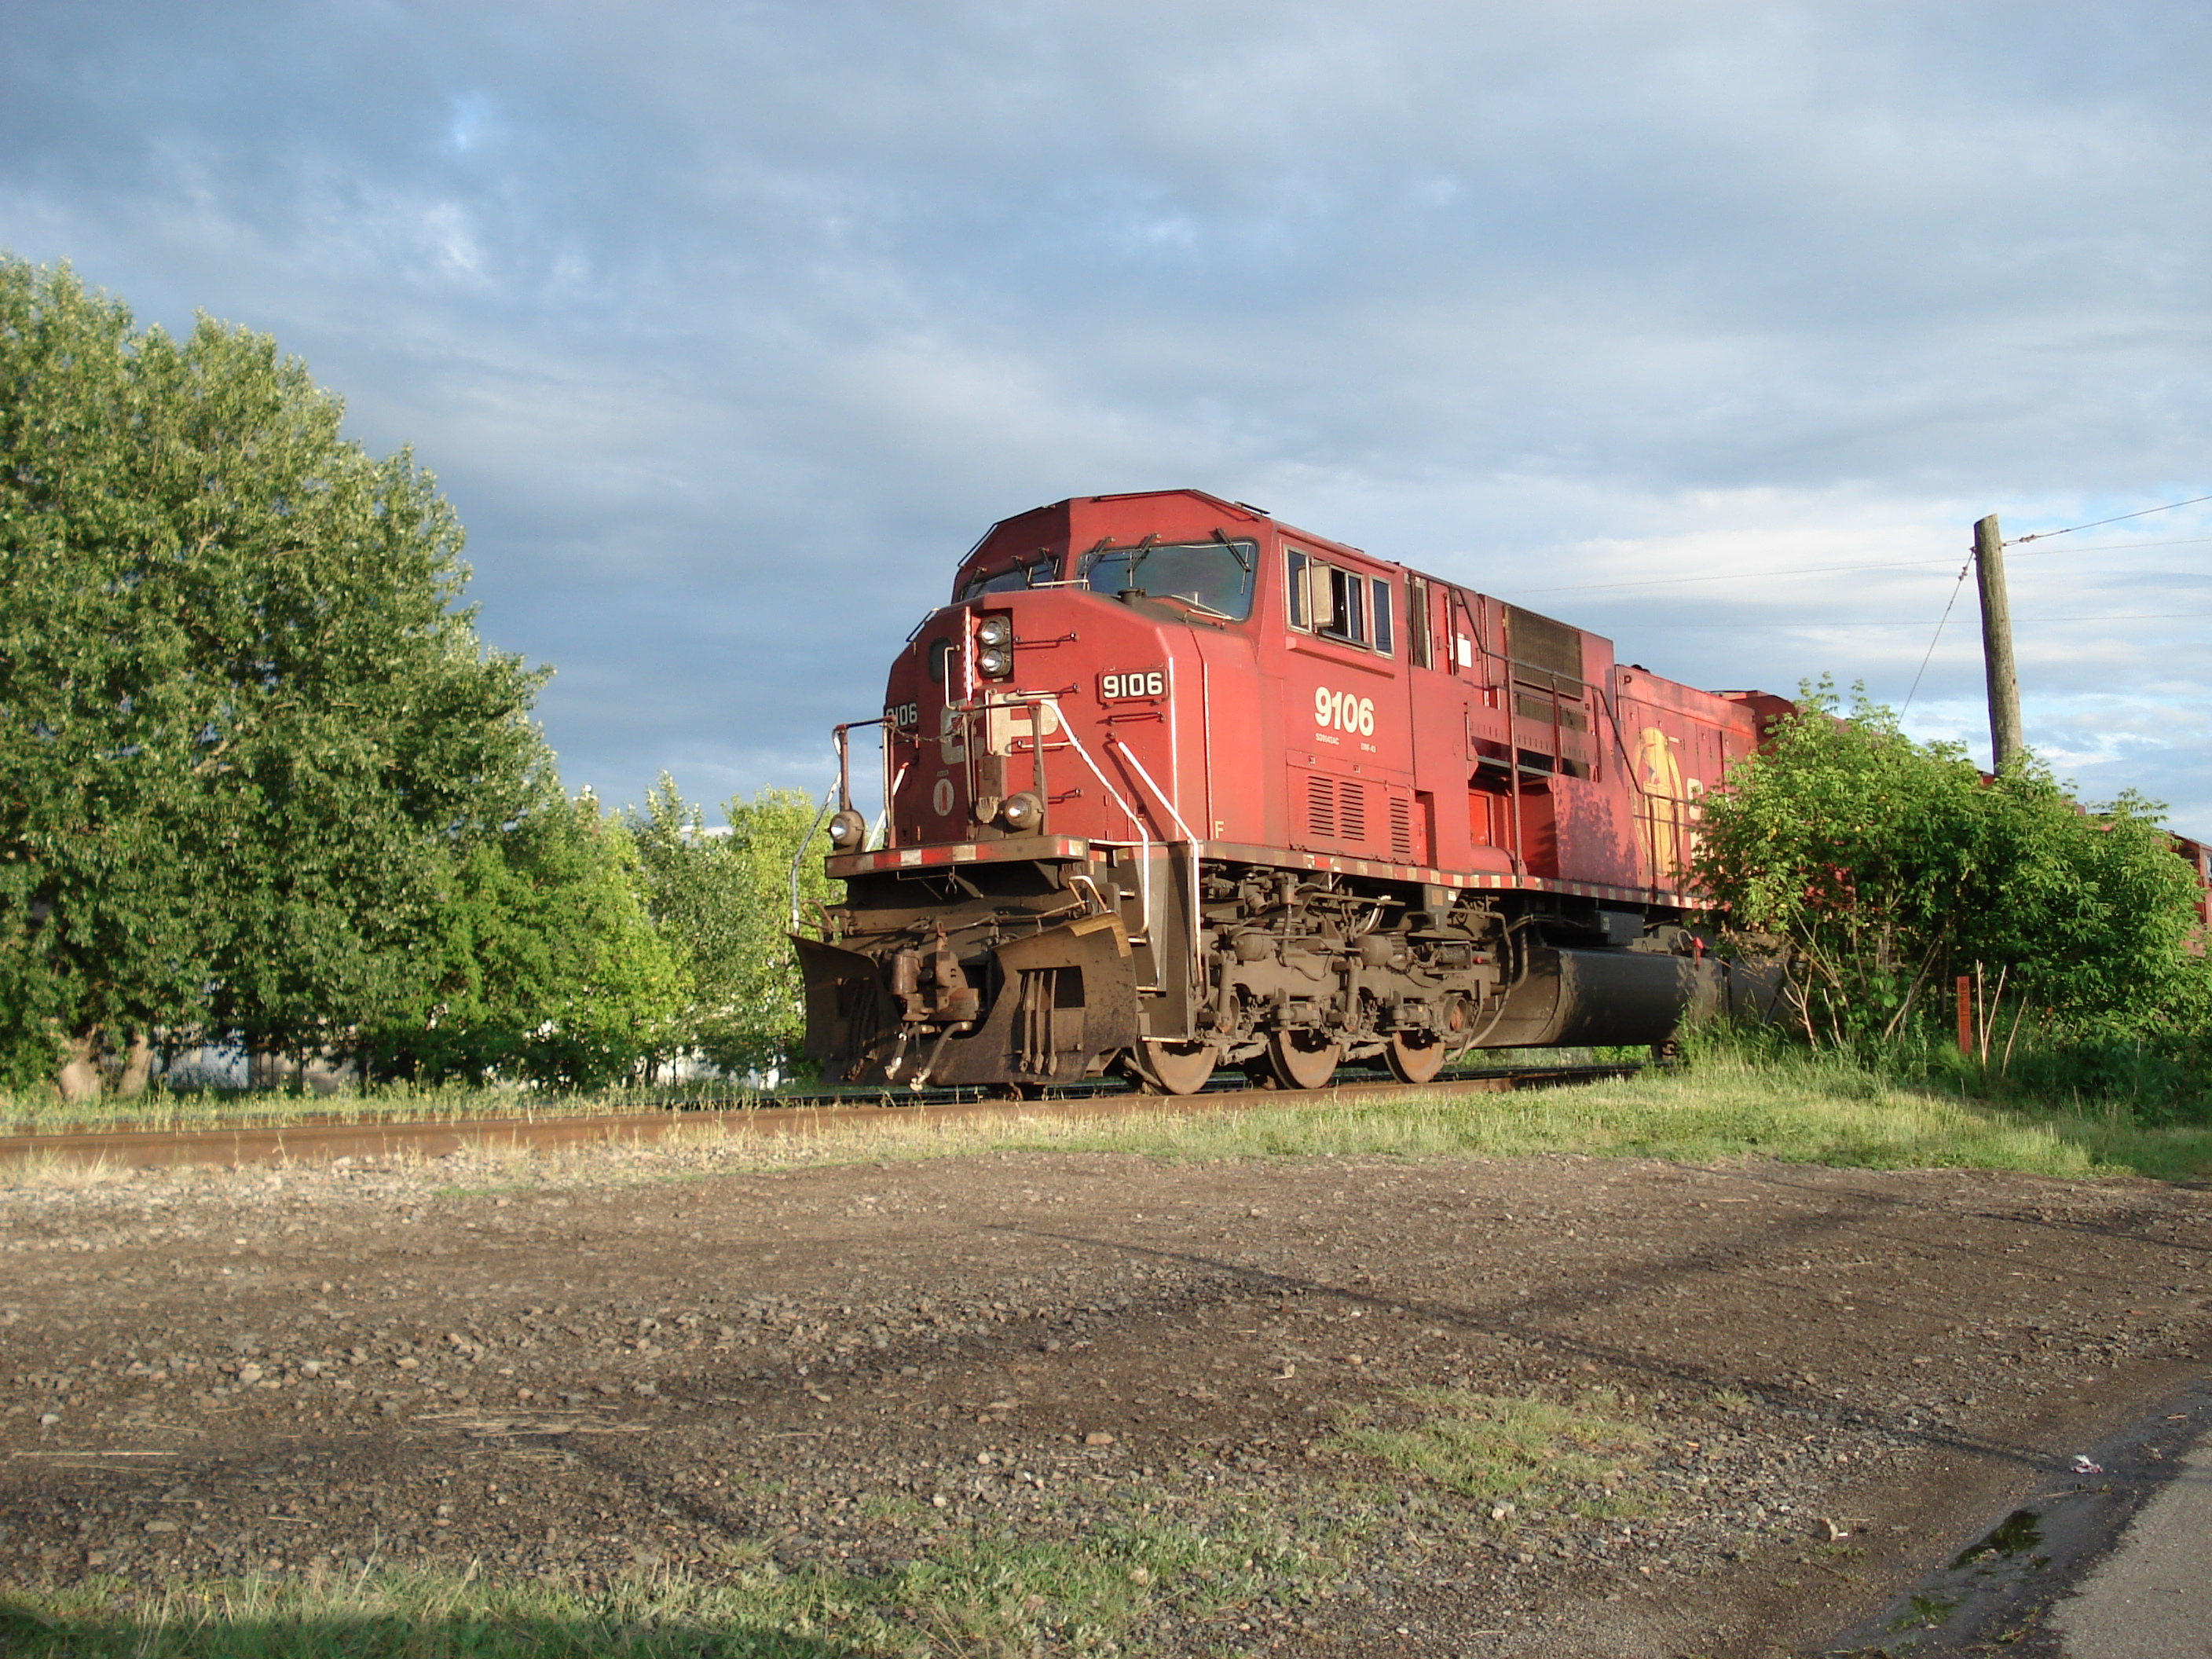 Canadian Pacific railway train (Wikipedia)